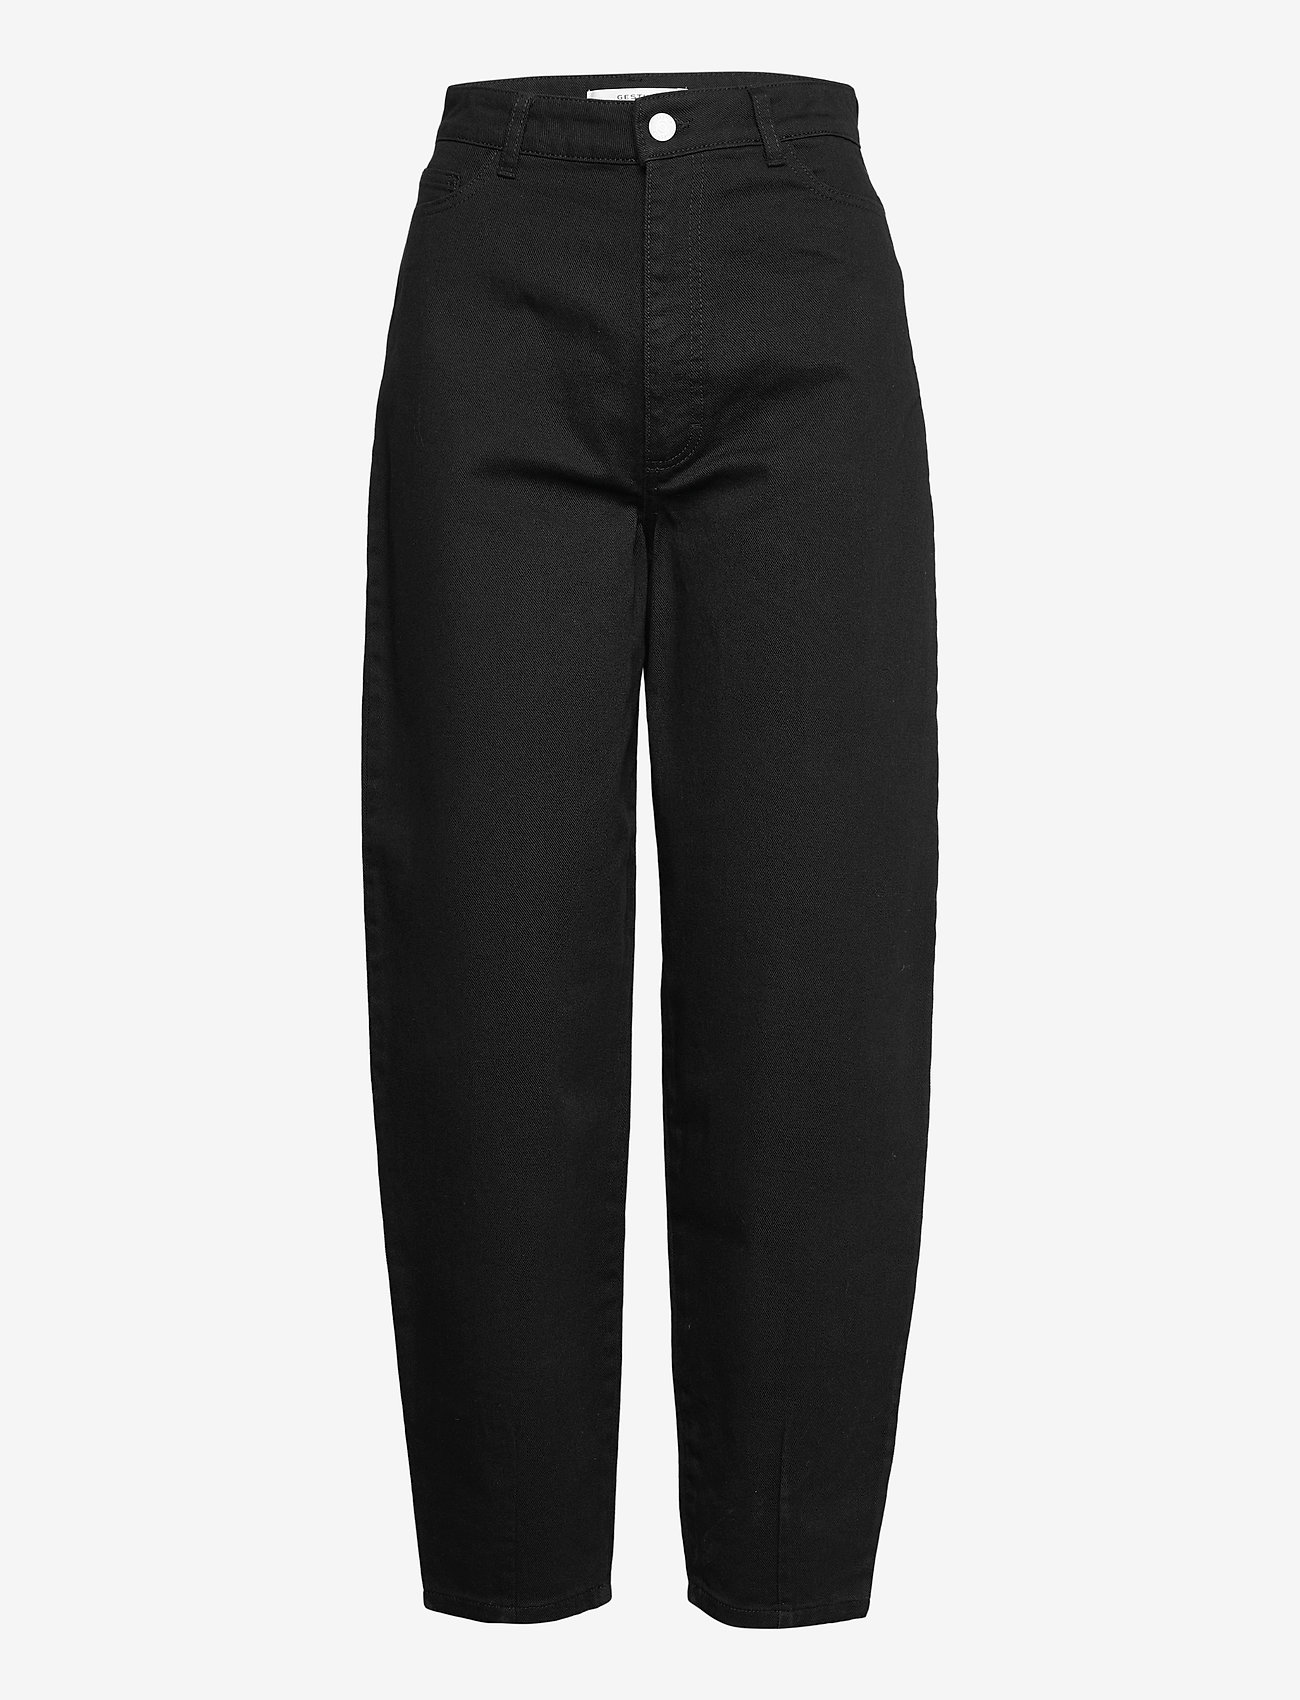 Gestuz - DeboraGZ HW jeans SO21 - mom jeans - black - 1